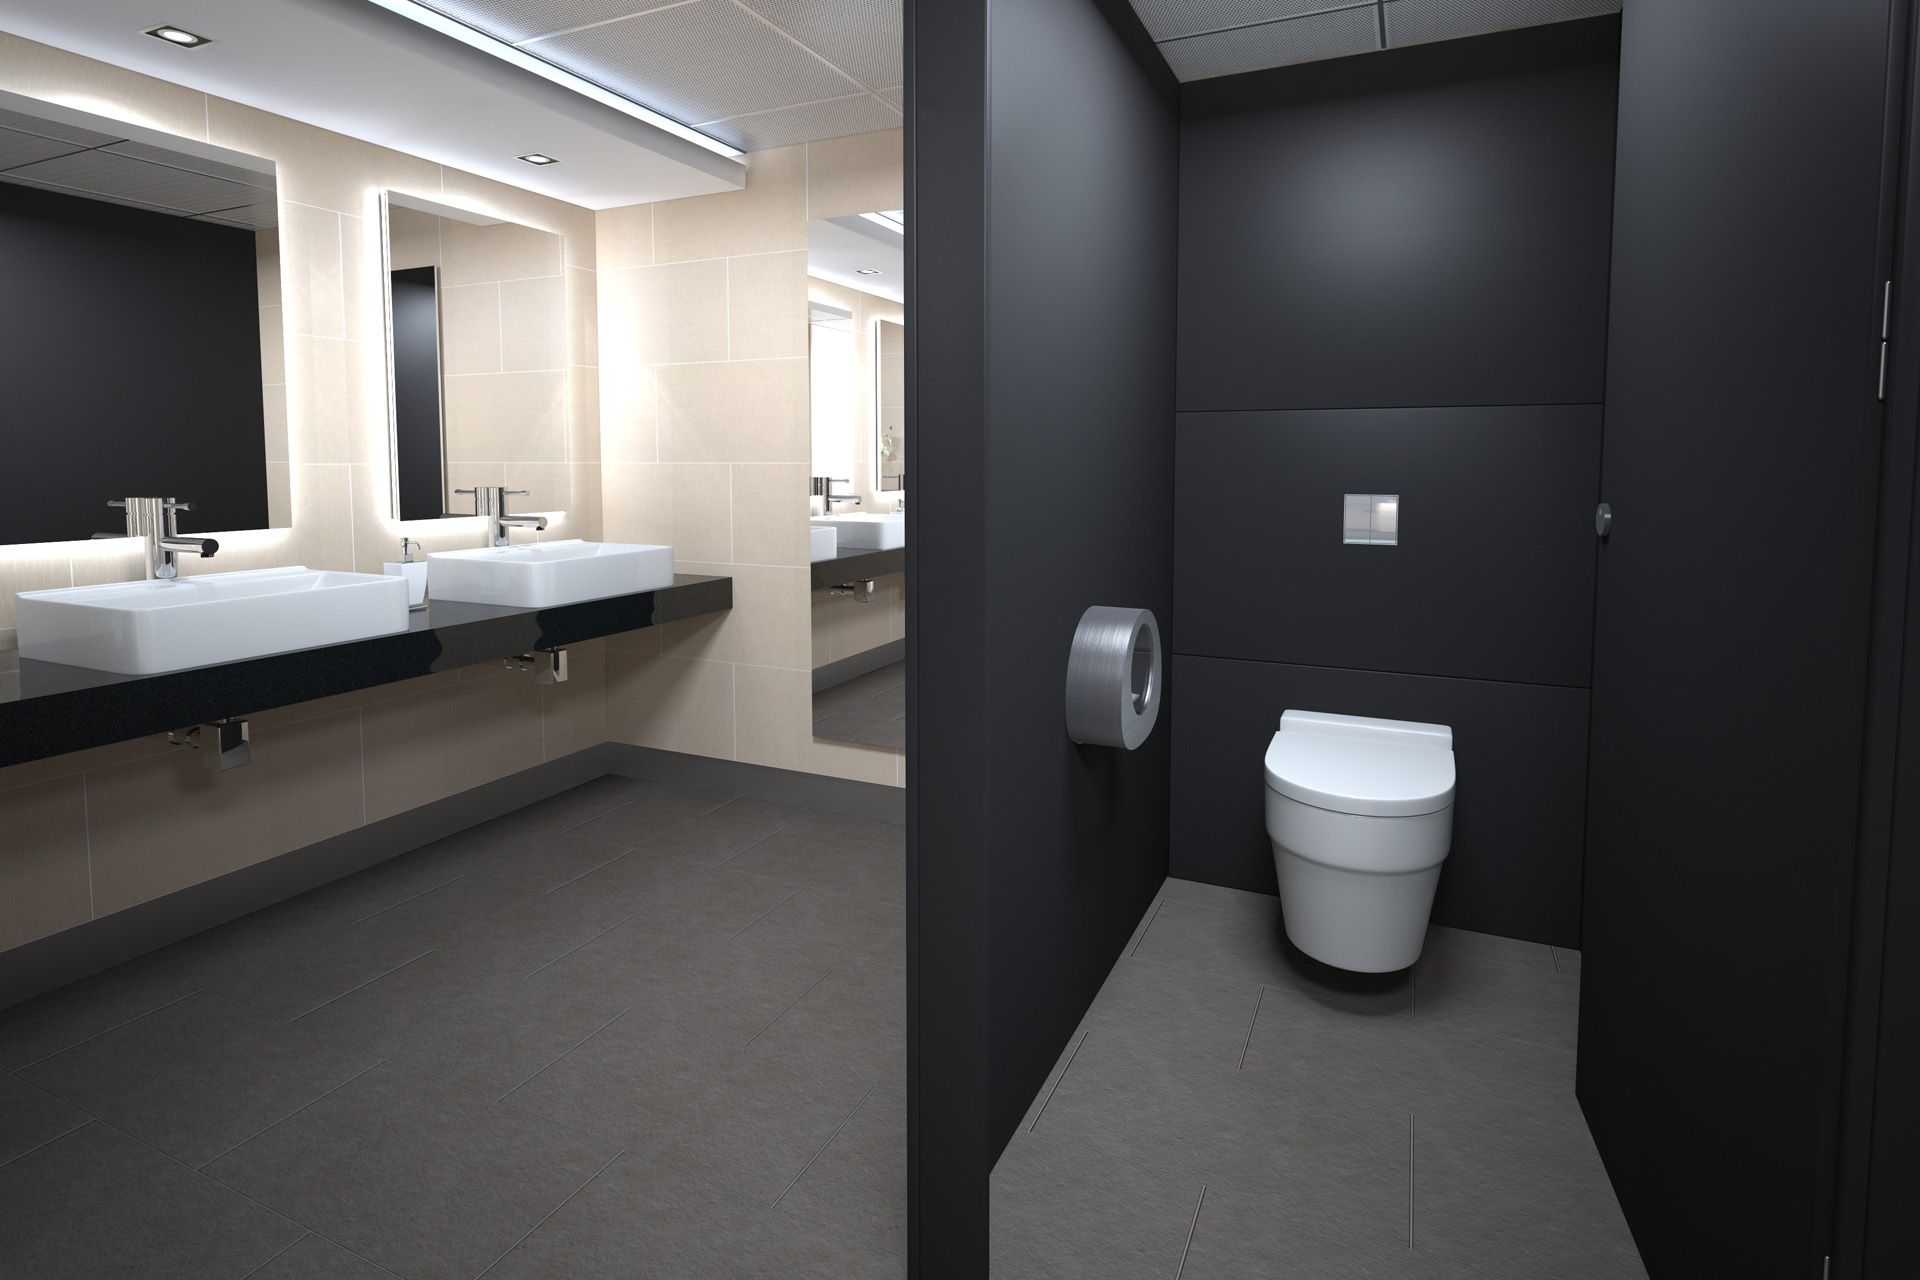 Office Bathroom Design With 50 Images For Toilet